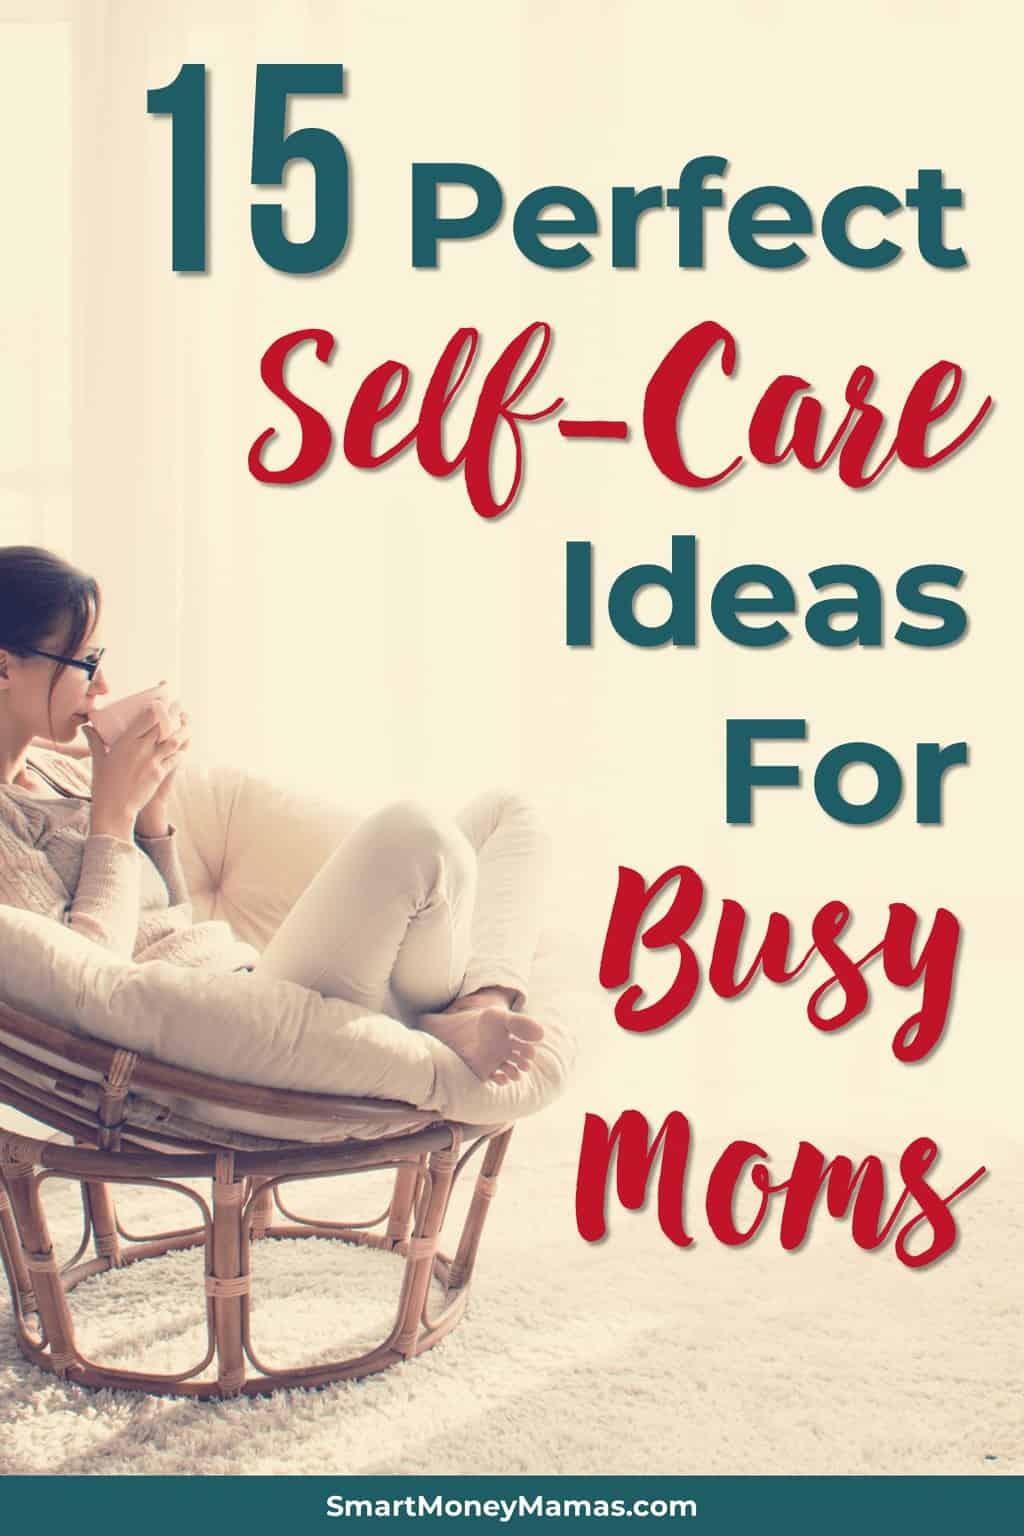 15 Perfect Self Care Ideas for Busy Moms